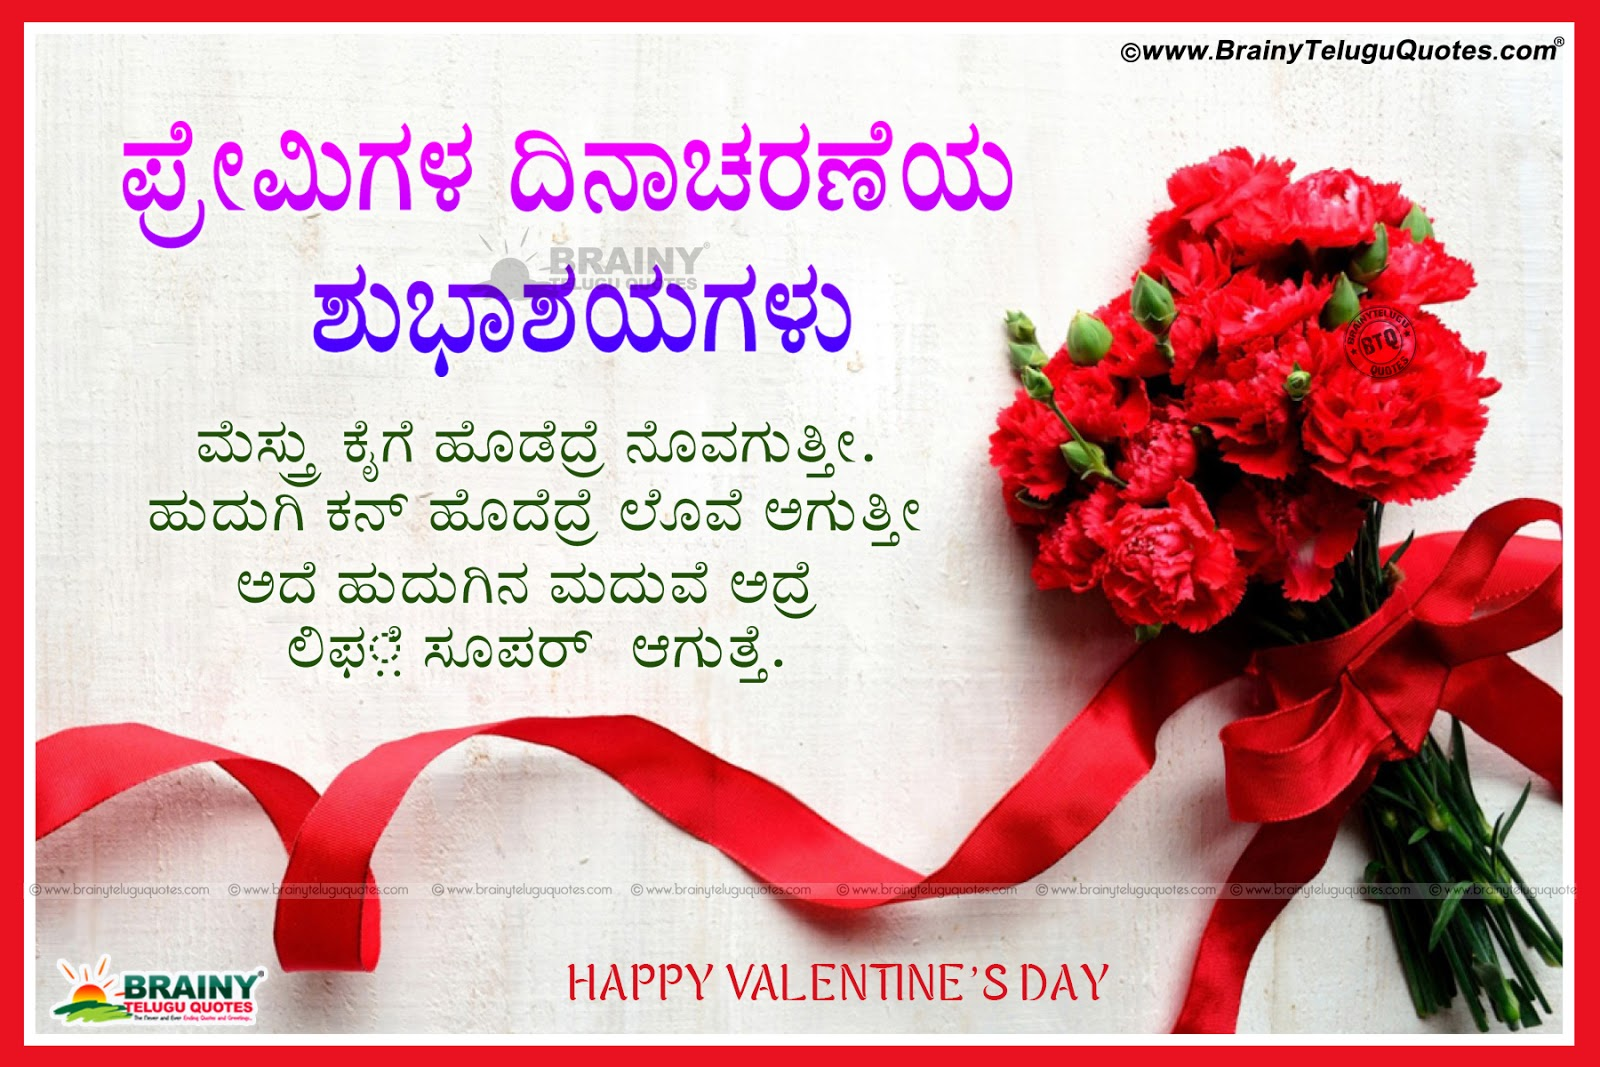 famous kannada poetry in kannada language hugging couple hd wallpapers with romantic kannada quotes kannada happy valentines day wishes - Valentines Day Greetings Quotes